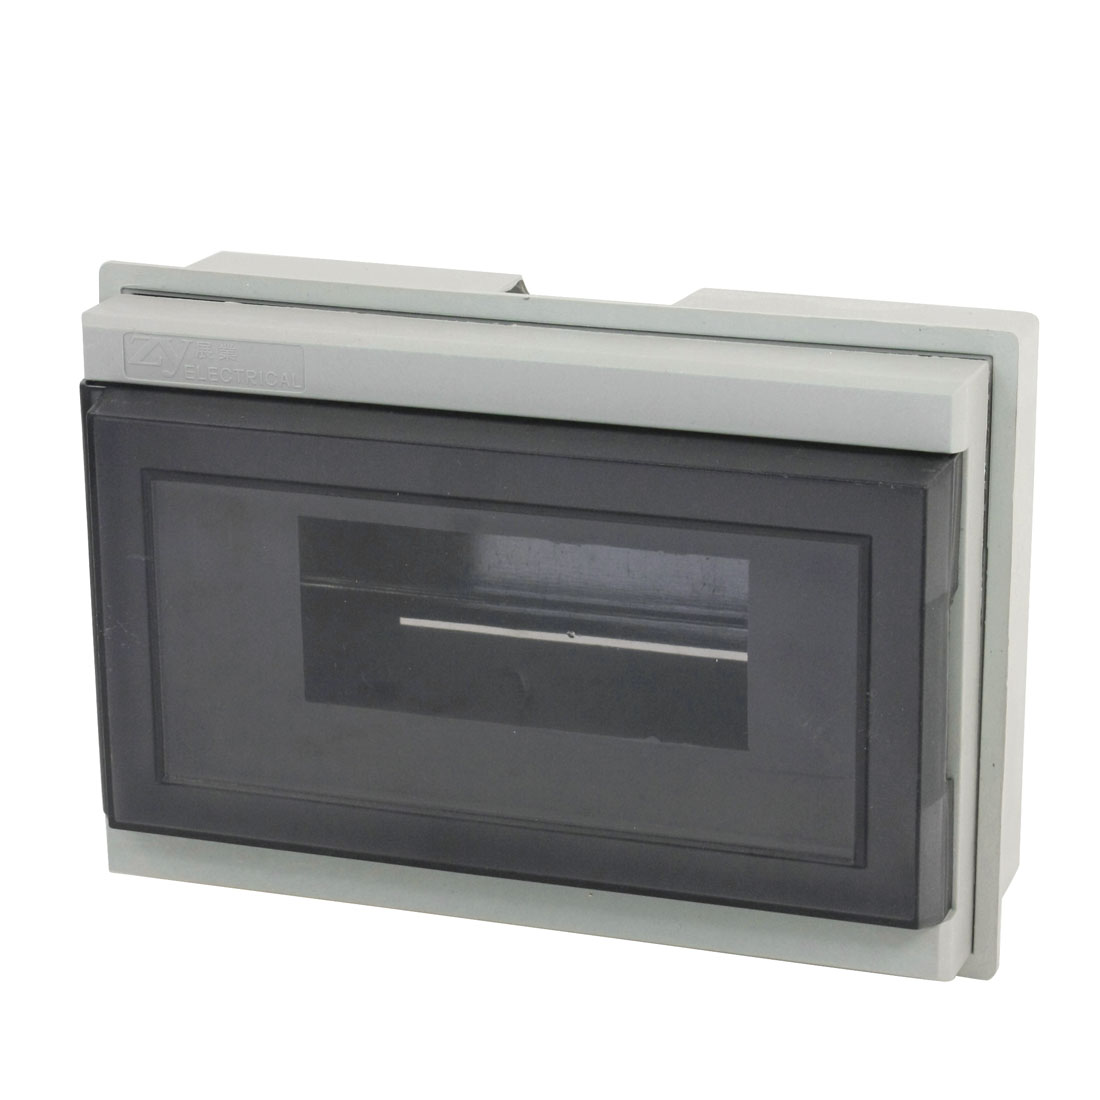 4-6-Ways-Gray-Waterproof-Enclosure-Electrical-Distribution-Box-Switchboard